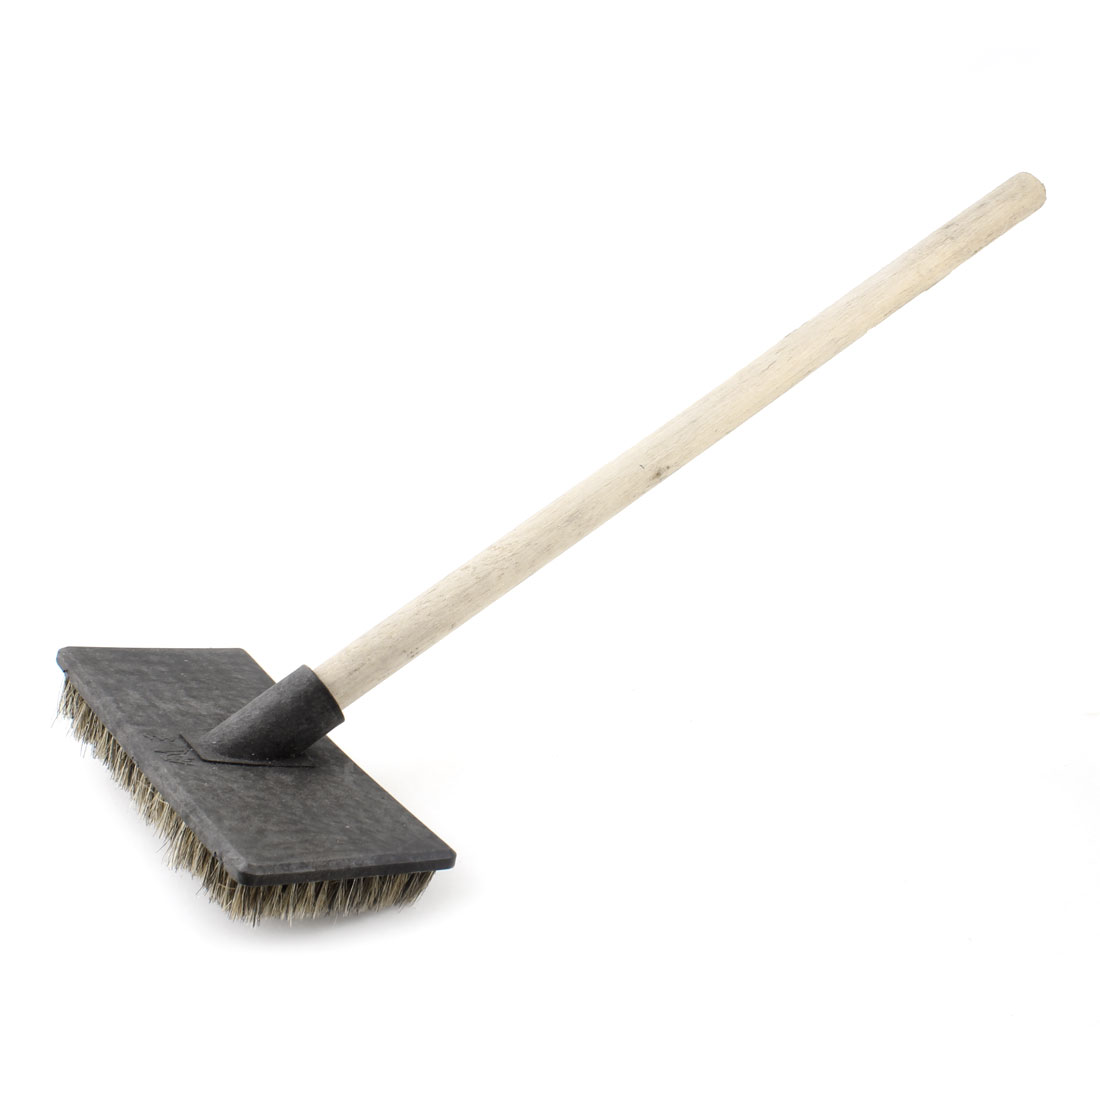 Wooden Grip Tile Bathroom Toilet Brush Cleaning Tool Brown Black